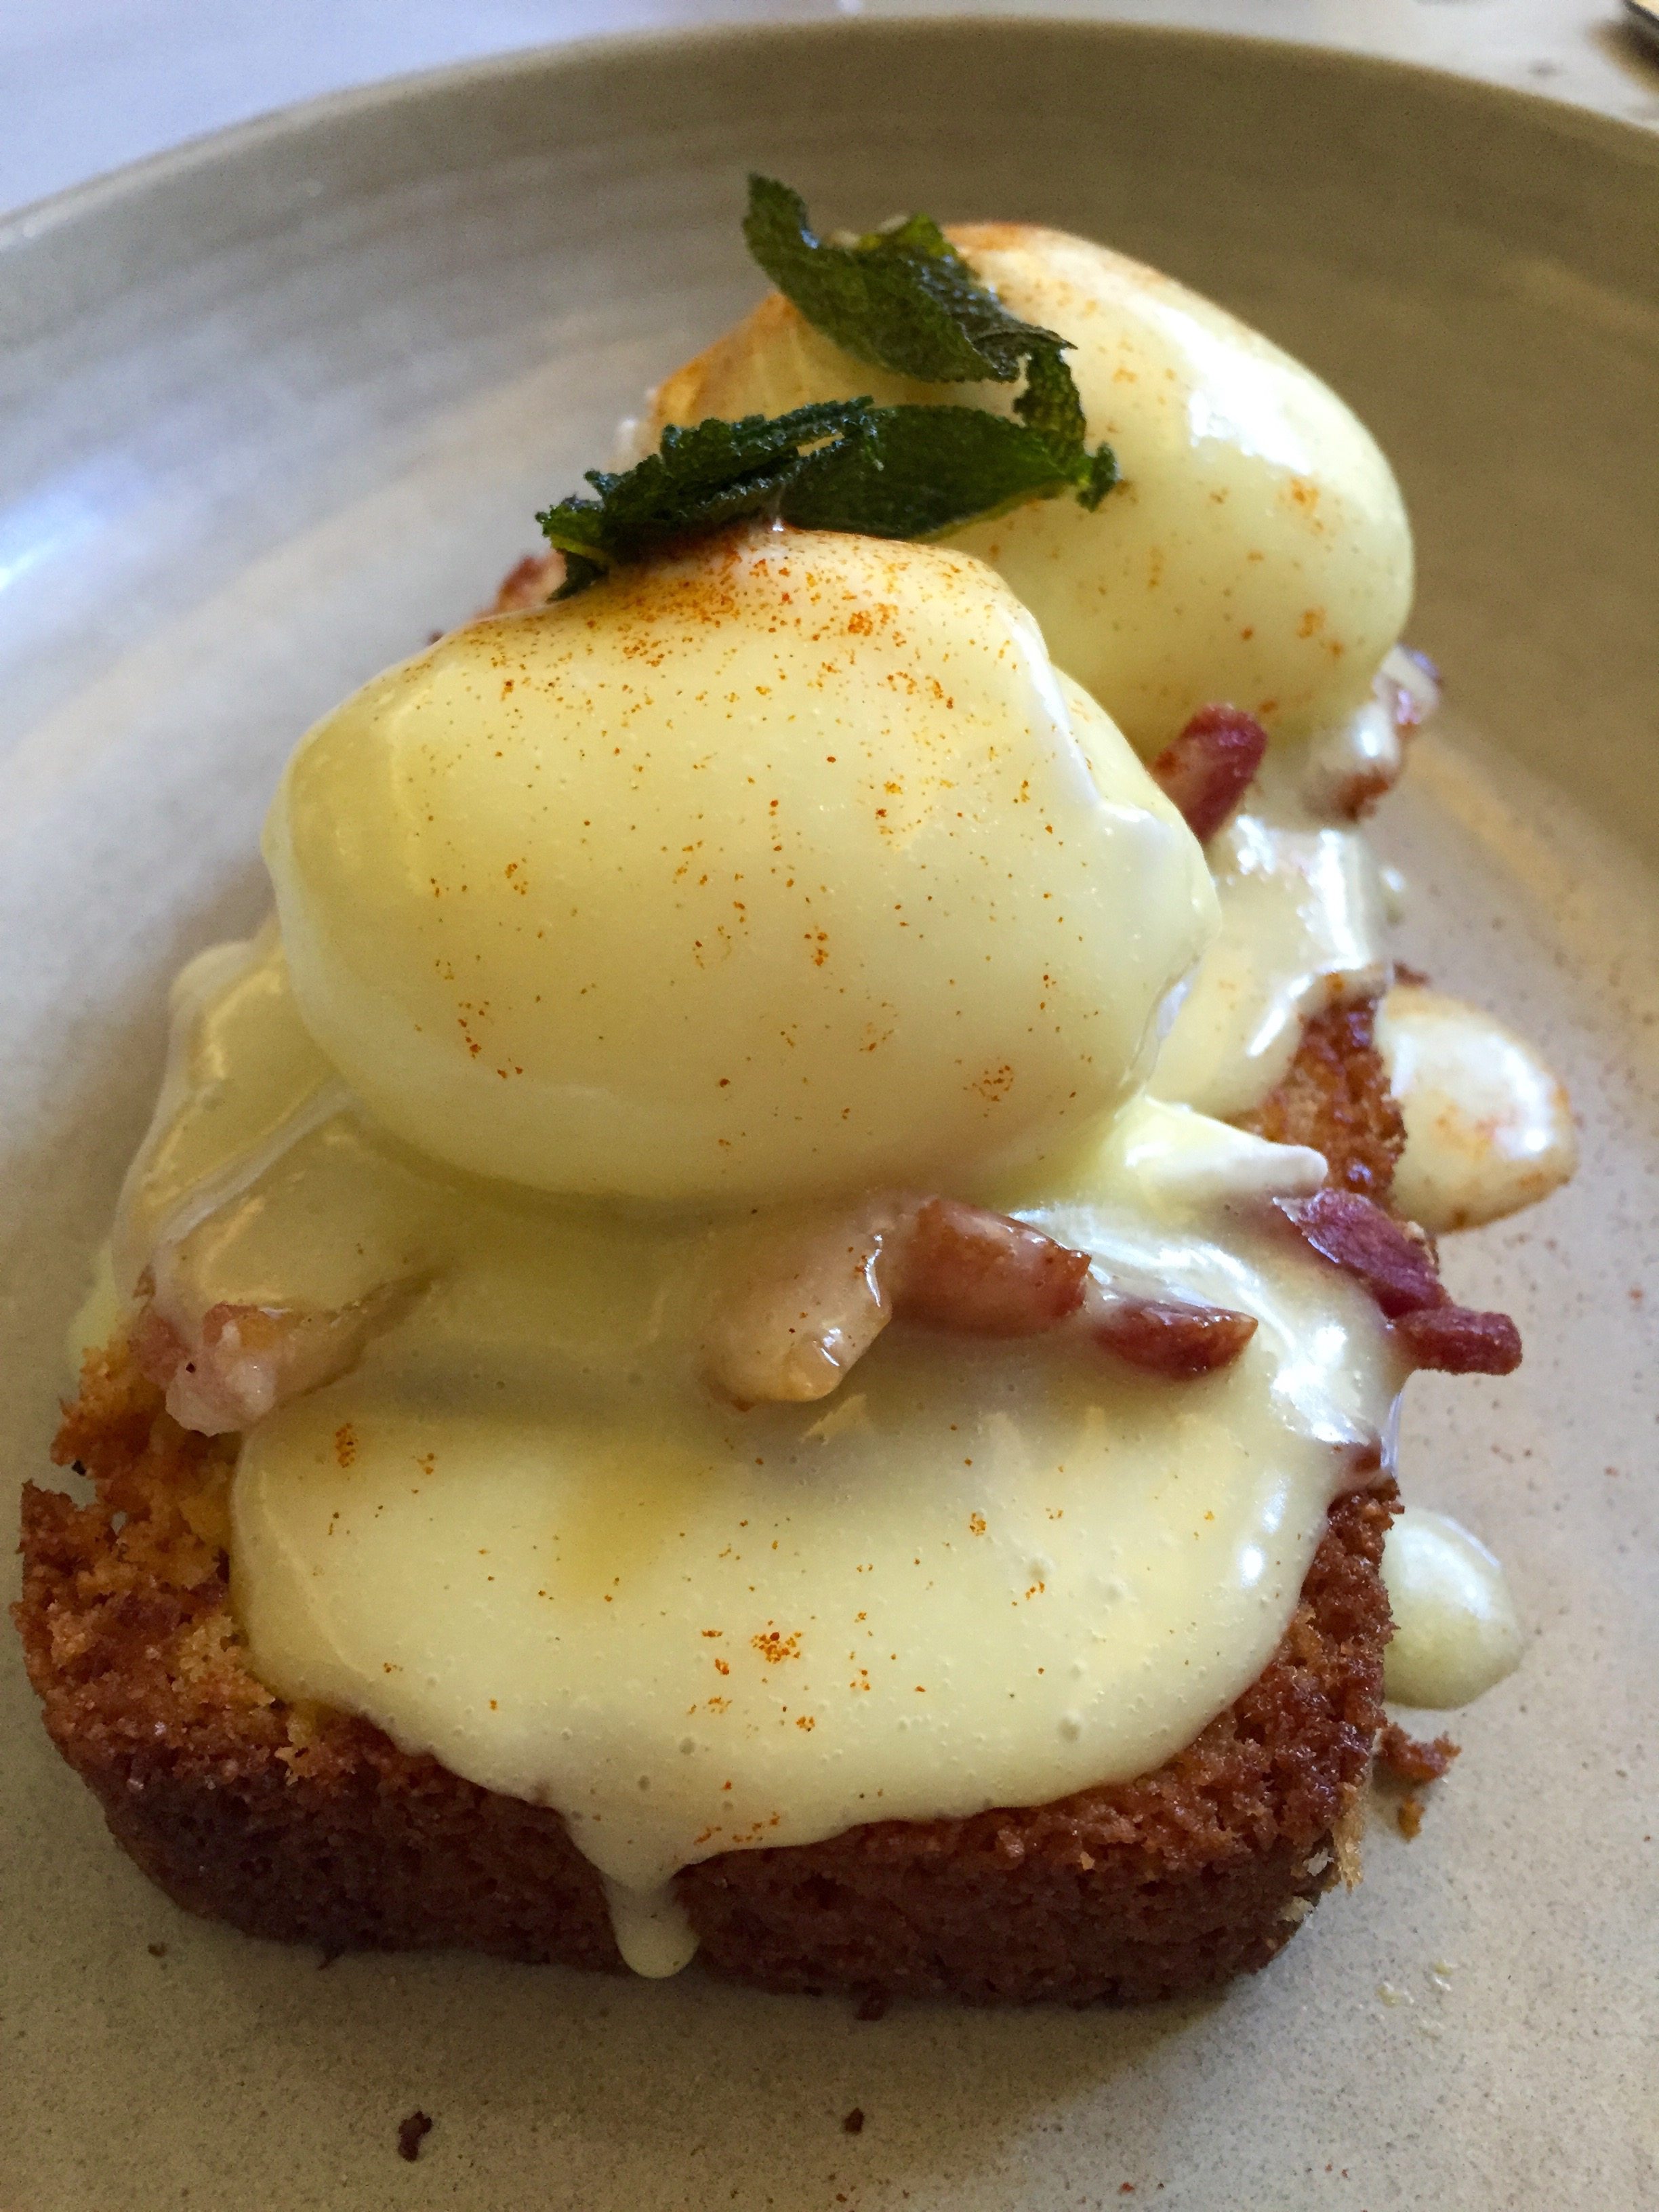 Smoked Pork Belly Benedict on corn bread with poached eggs and pimento hollandaise.